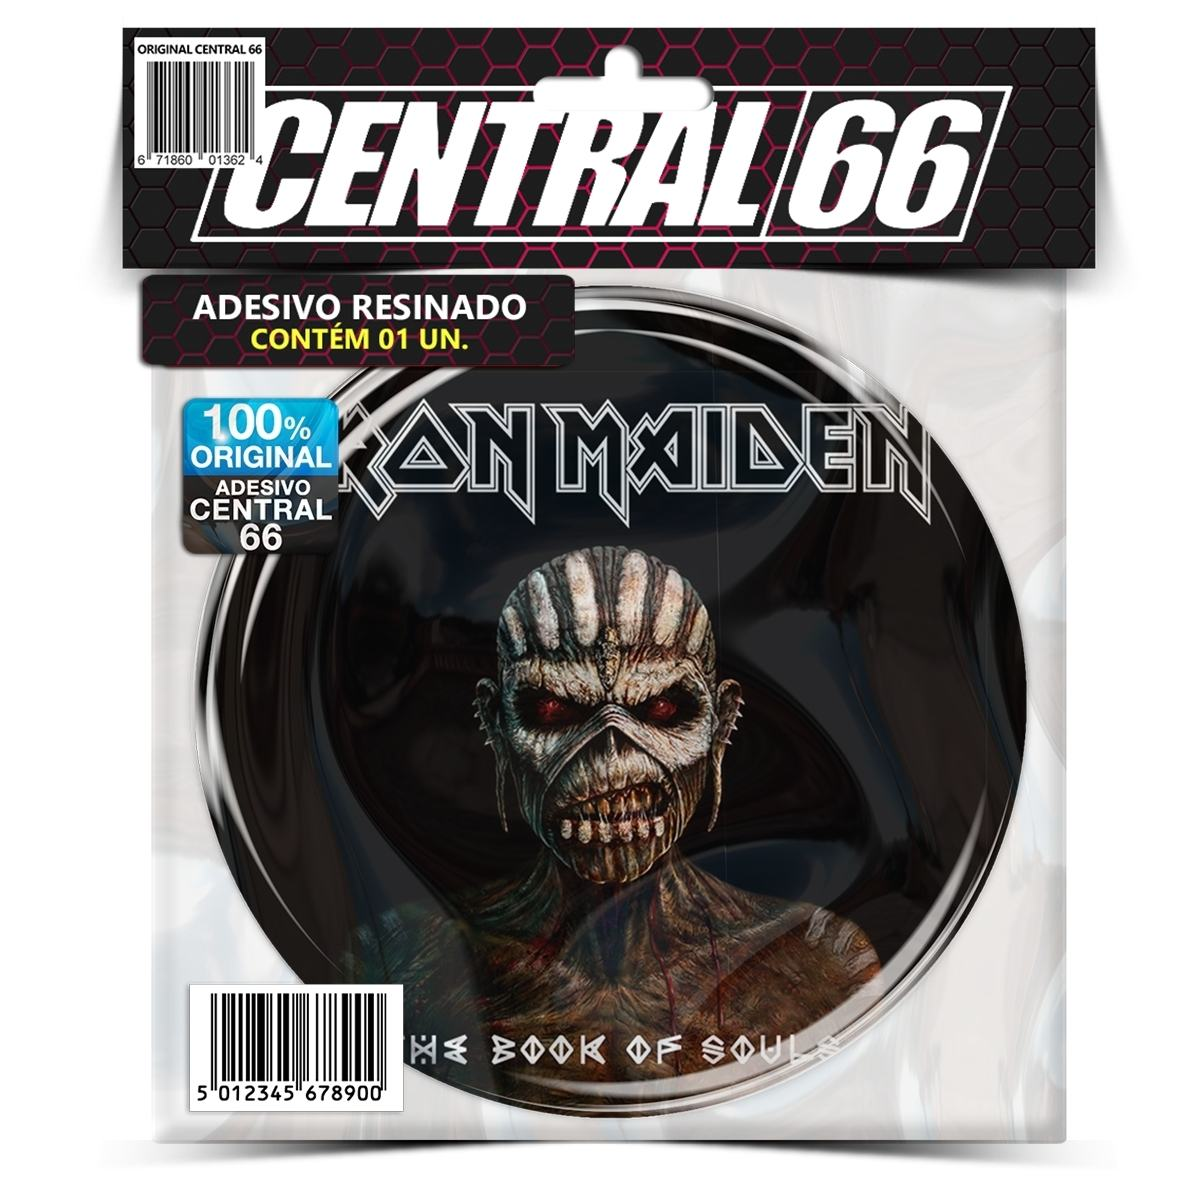 Adesivo Redondo Iron Maiden The Book of Soul – Central 66